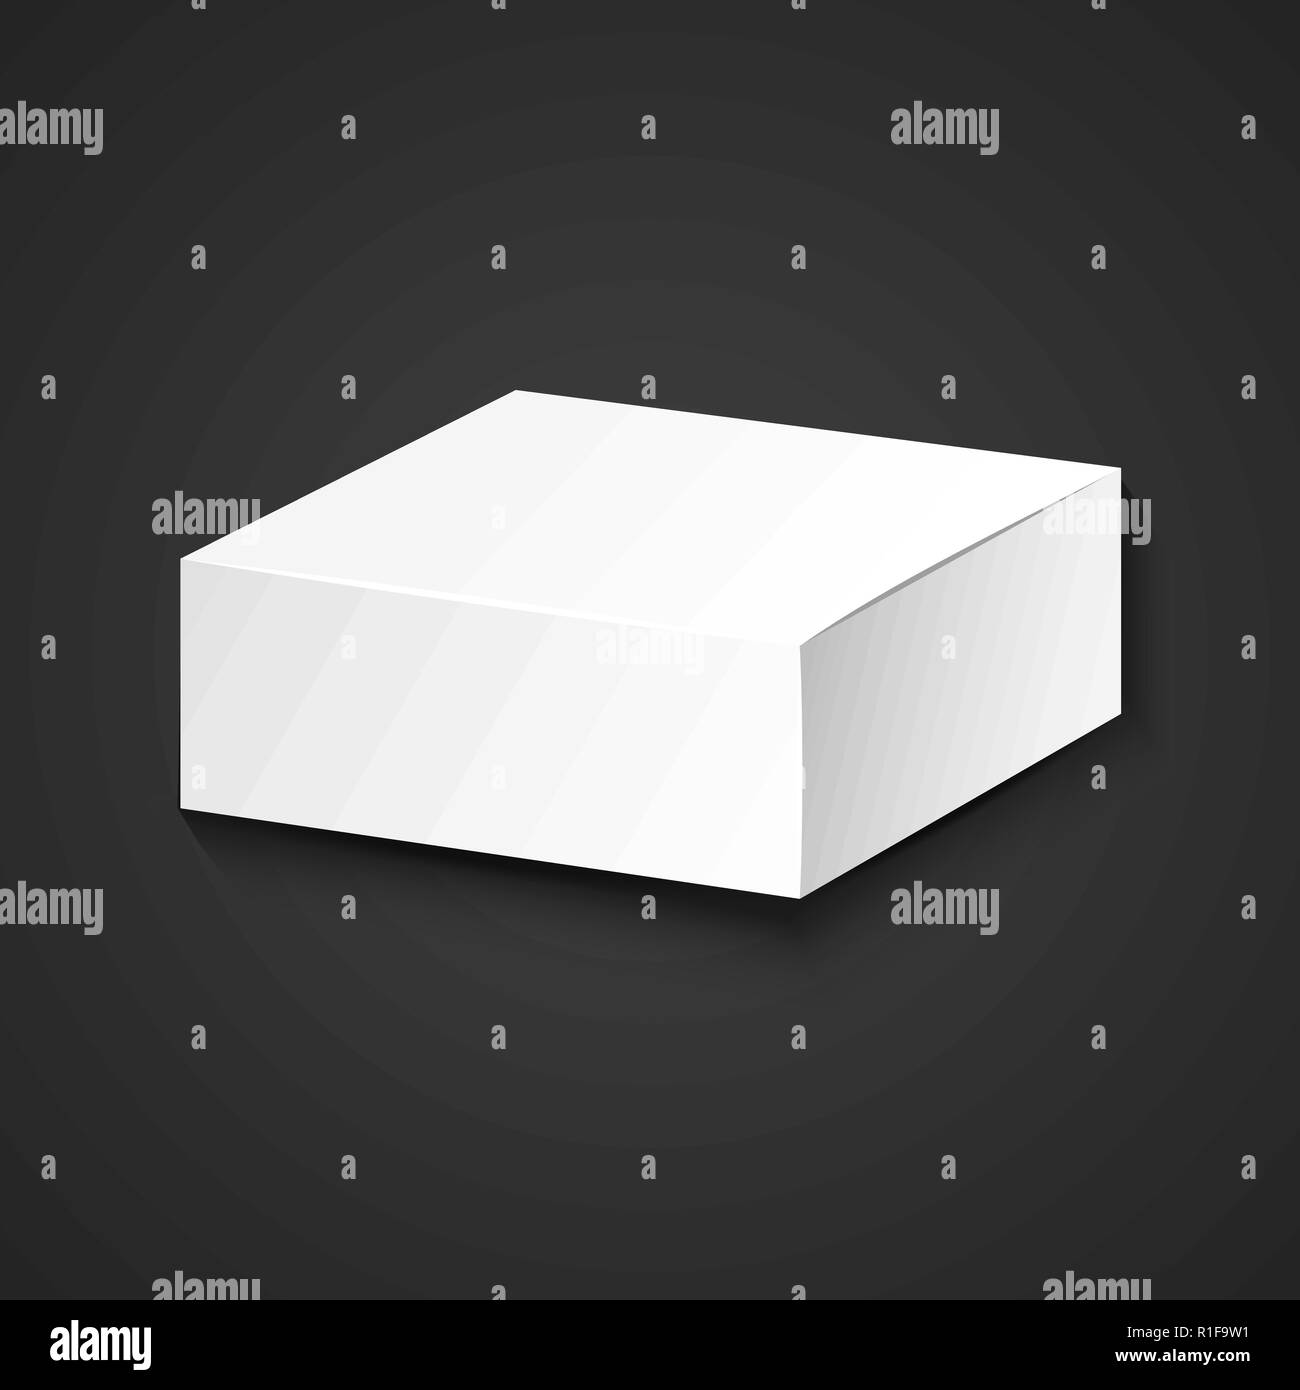 Vector White Blank Mock Up Paper Low Square Package Cardboard Box Illustration Realistic With Shadow Template